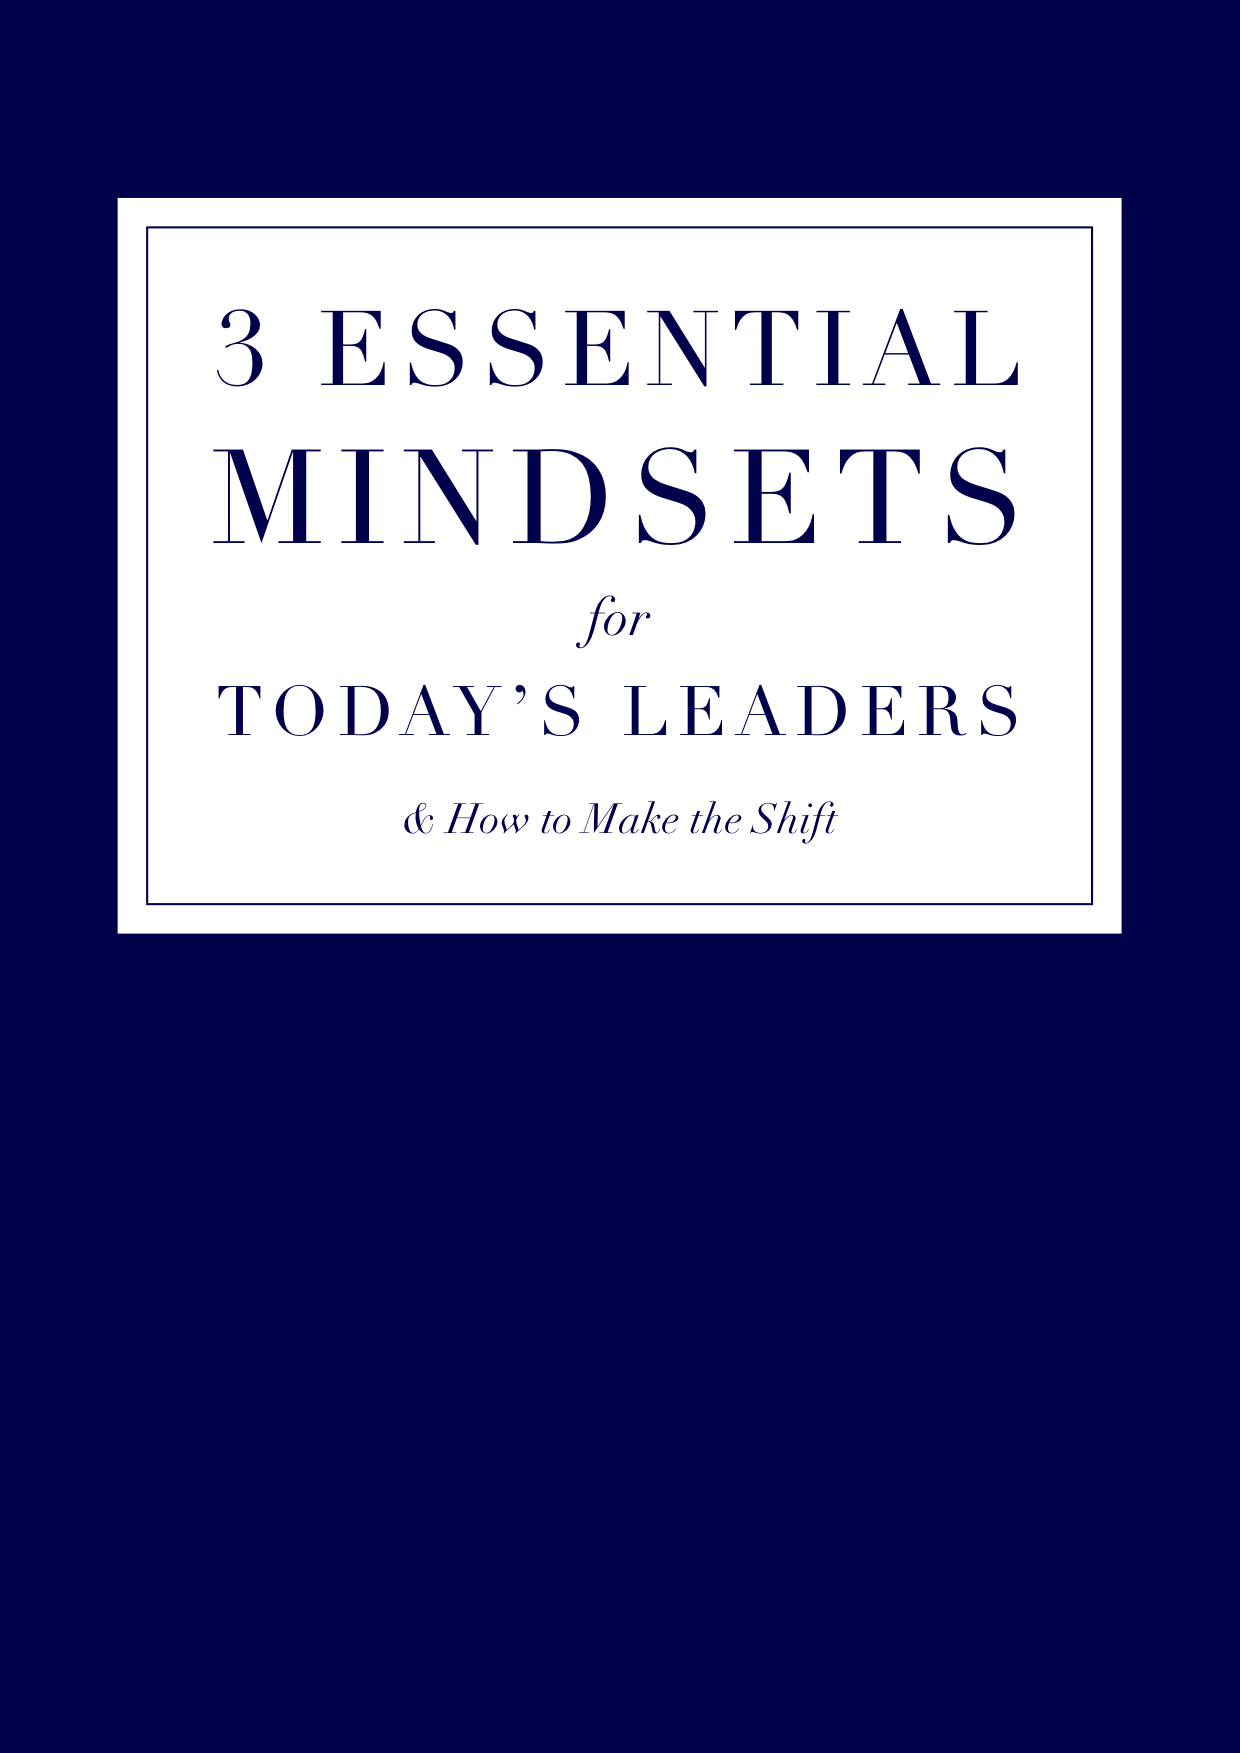 3 Essential Mindsets for Today's Leaders